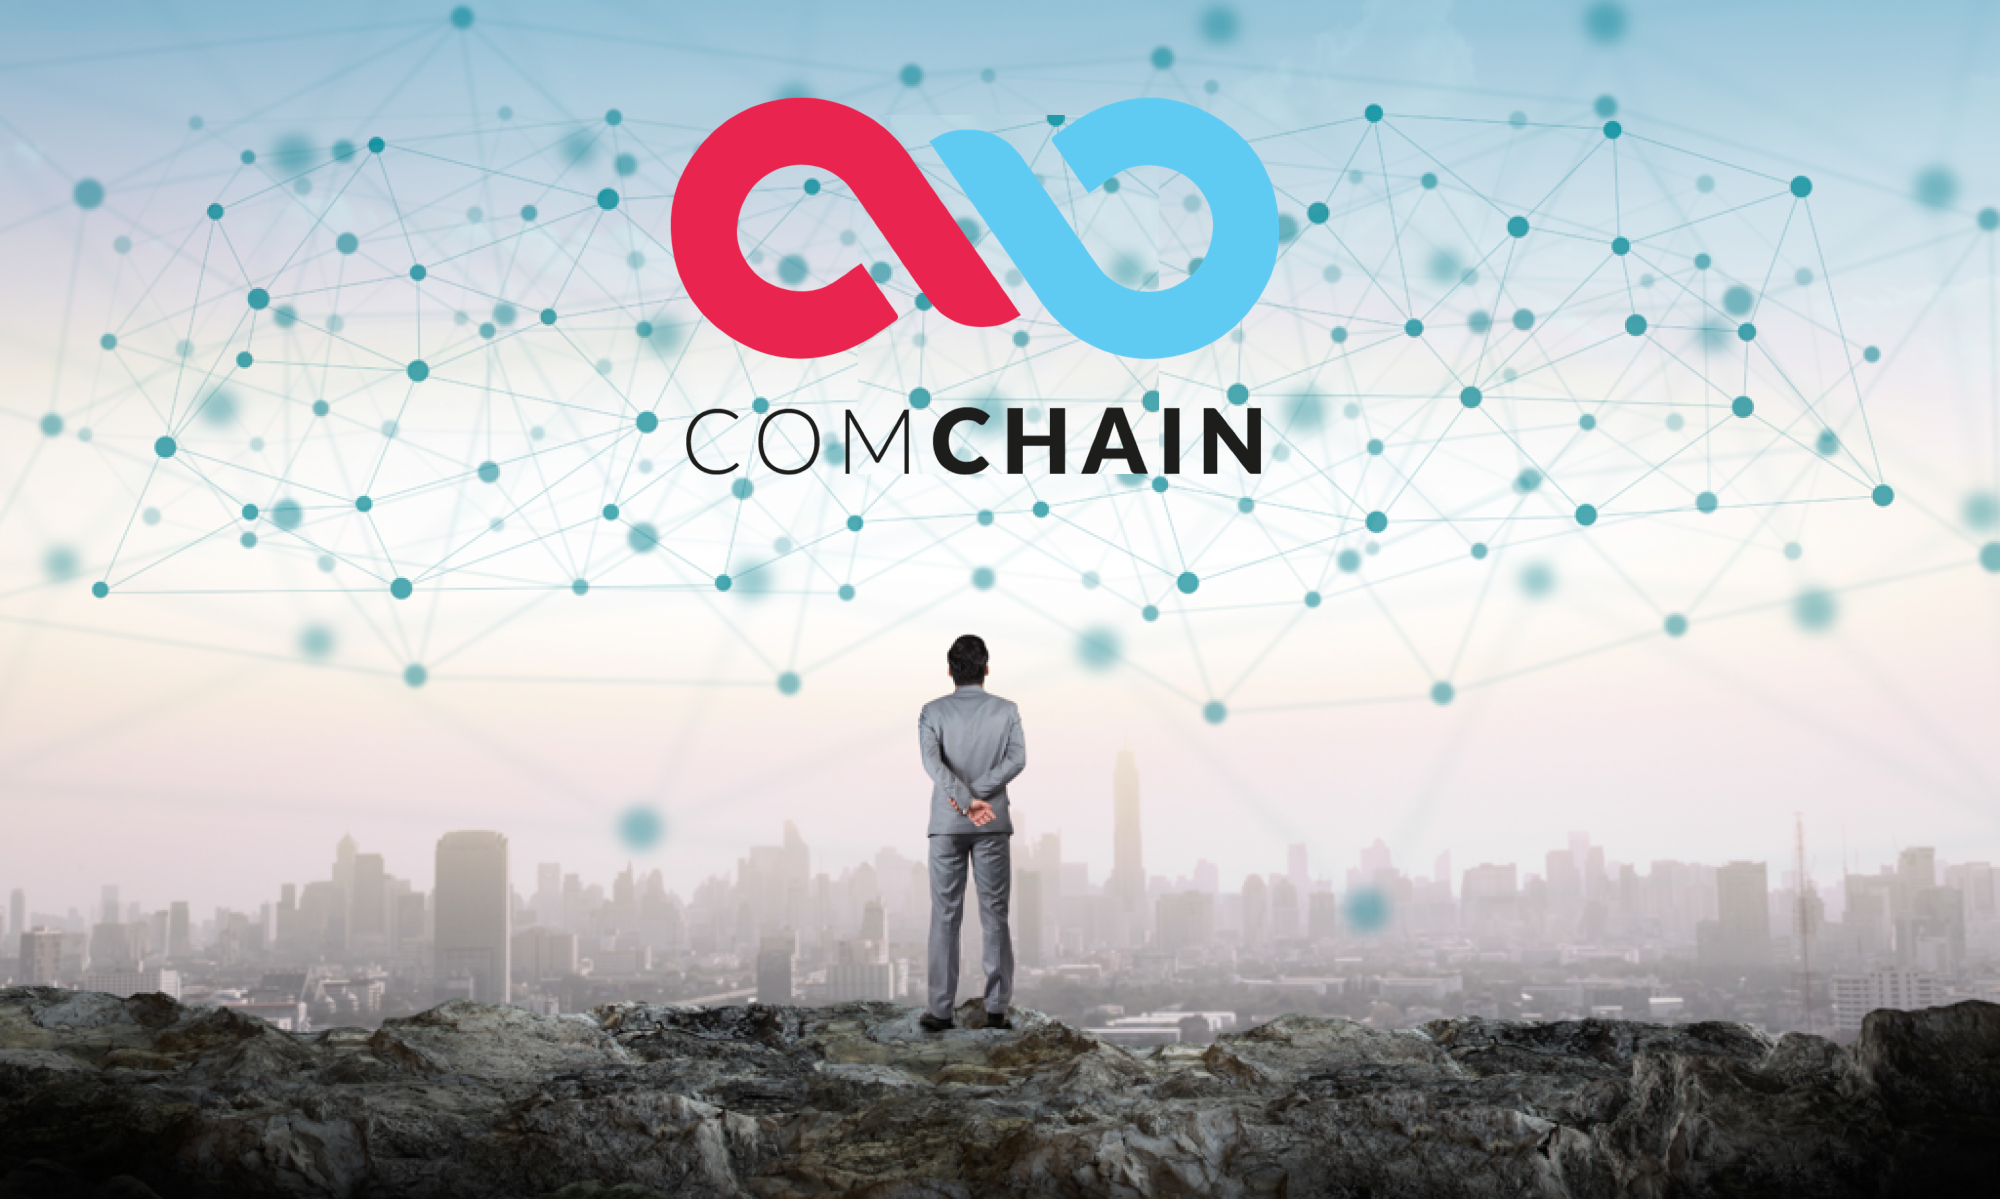 The comchain alliance